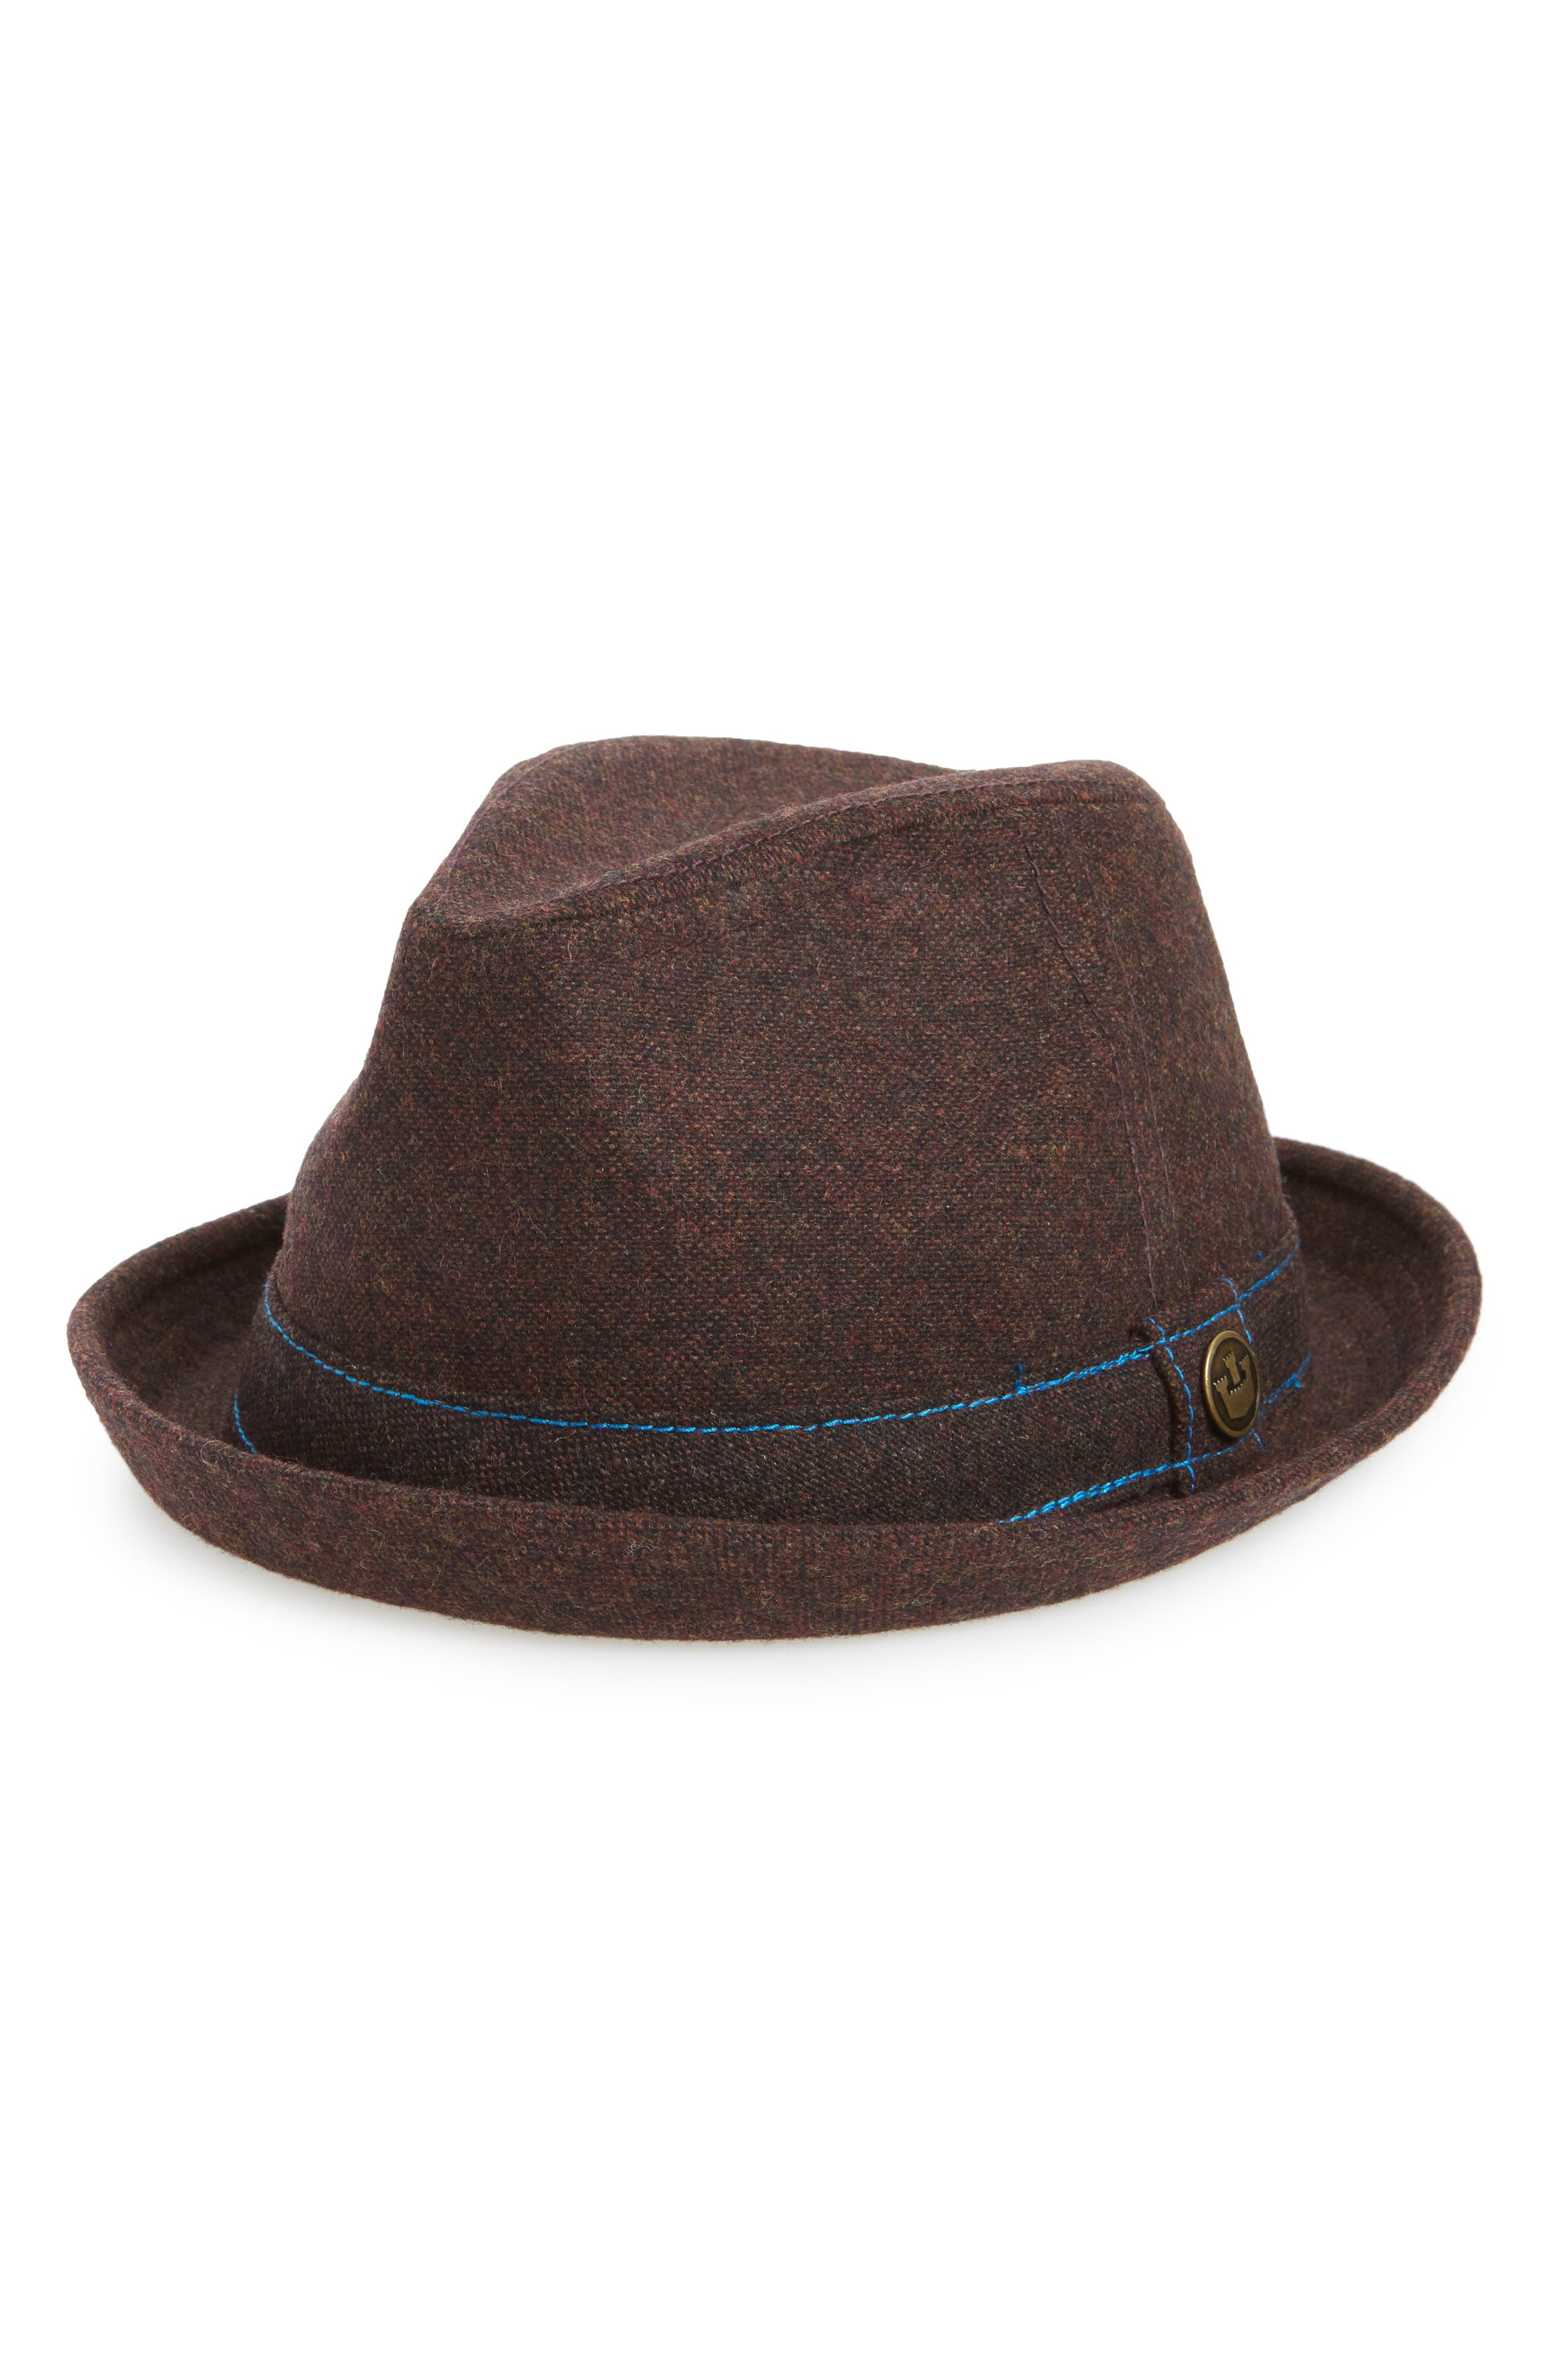 Main Image - Goorin Brothers The Barber Wool Blend Fedora